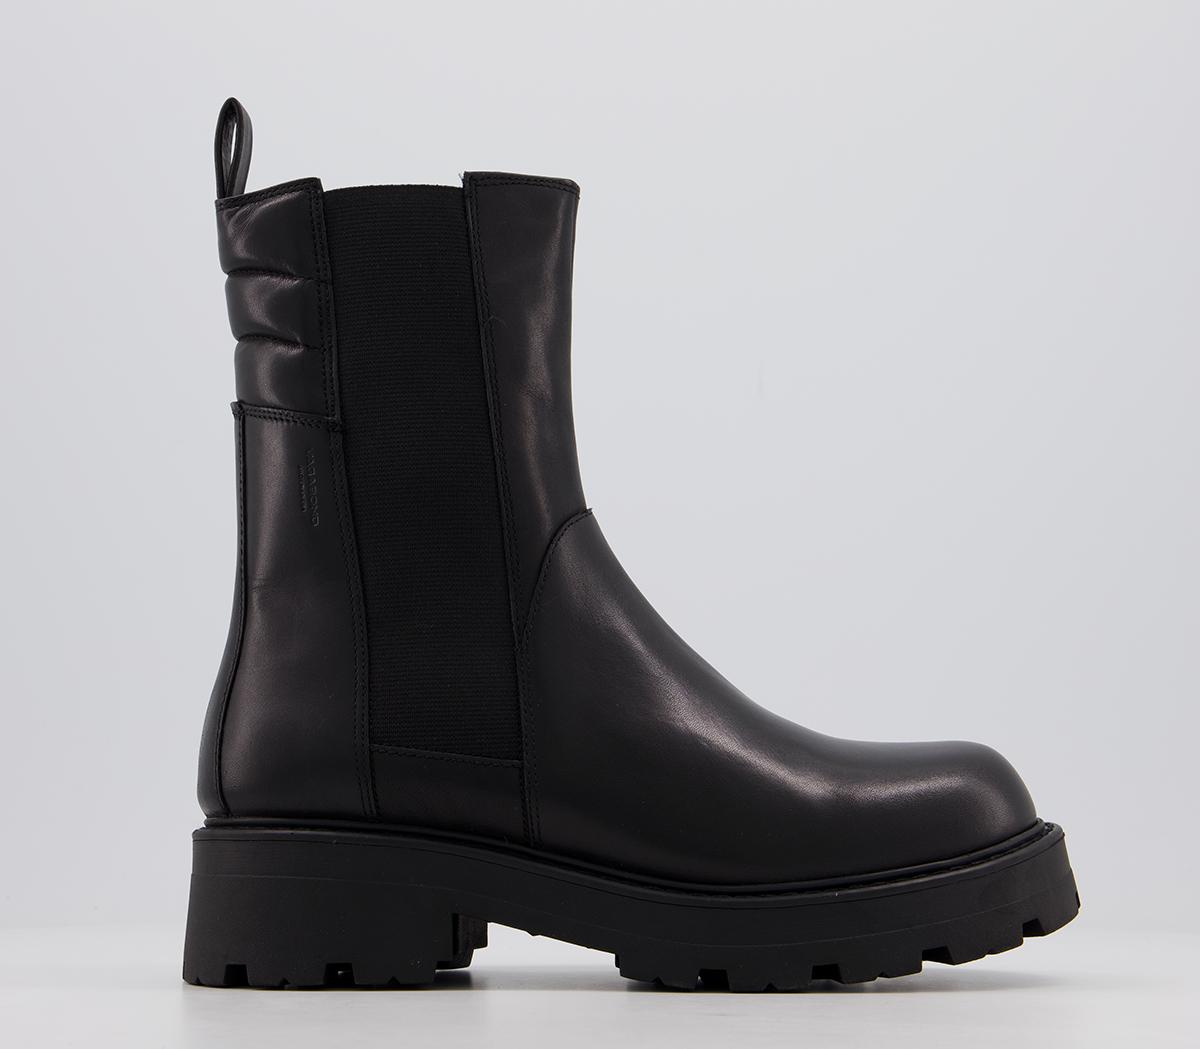 Cosmo 2.0 High Chelsea Boots